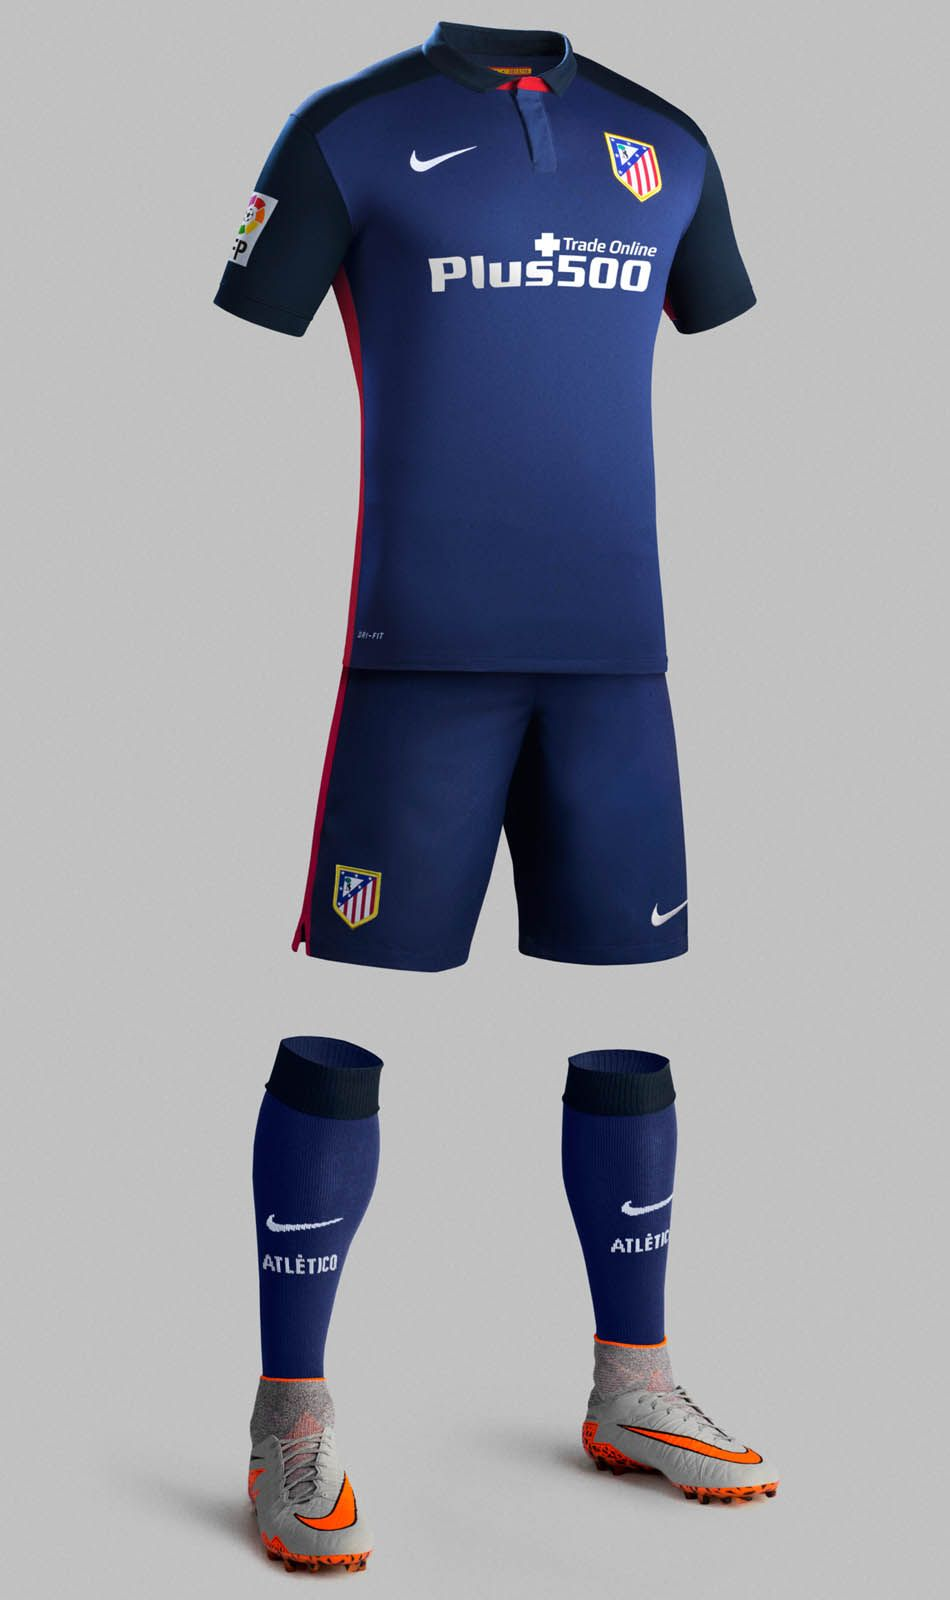 650f369a2 Atlético Madrid 15-16 Away Kit Released